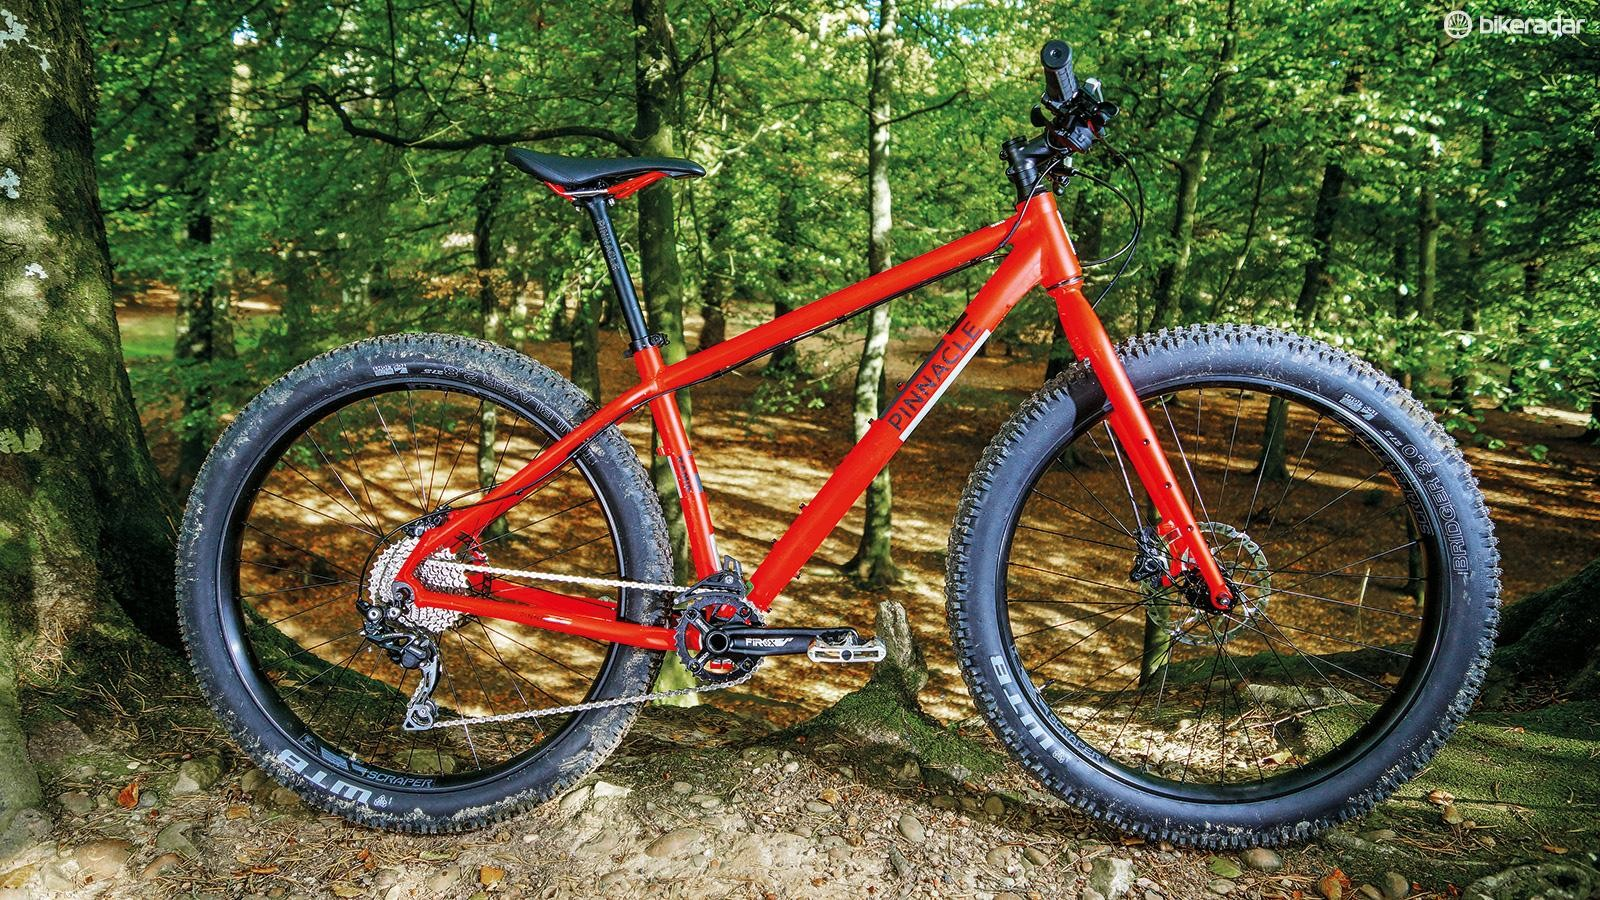 Pinnacle's Ramin 3 Plus is a left field choice for those who want to spend £900